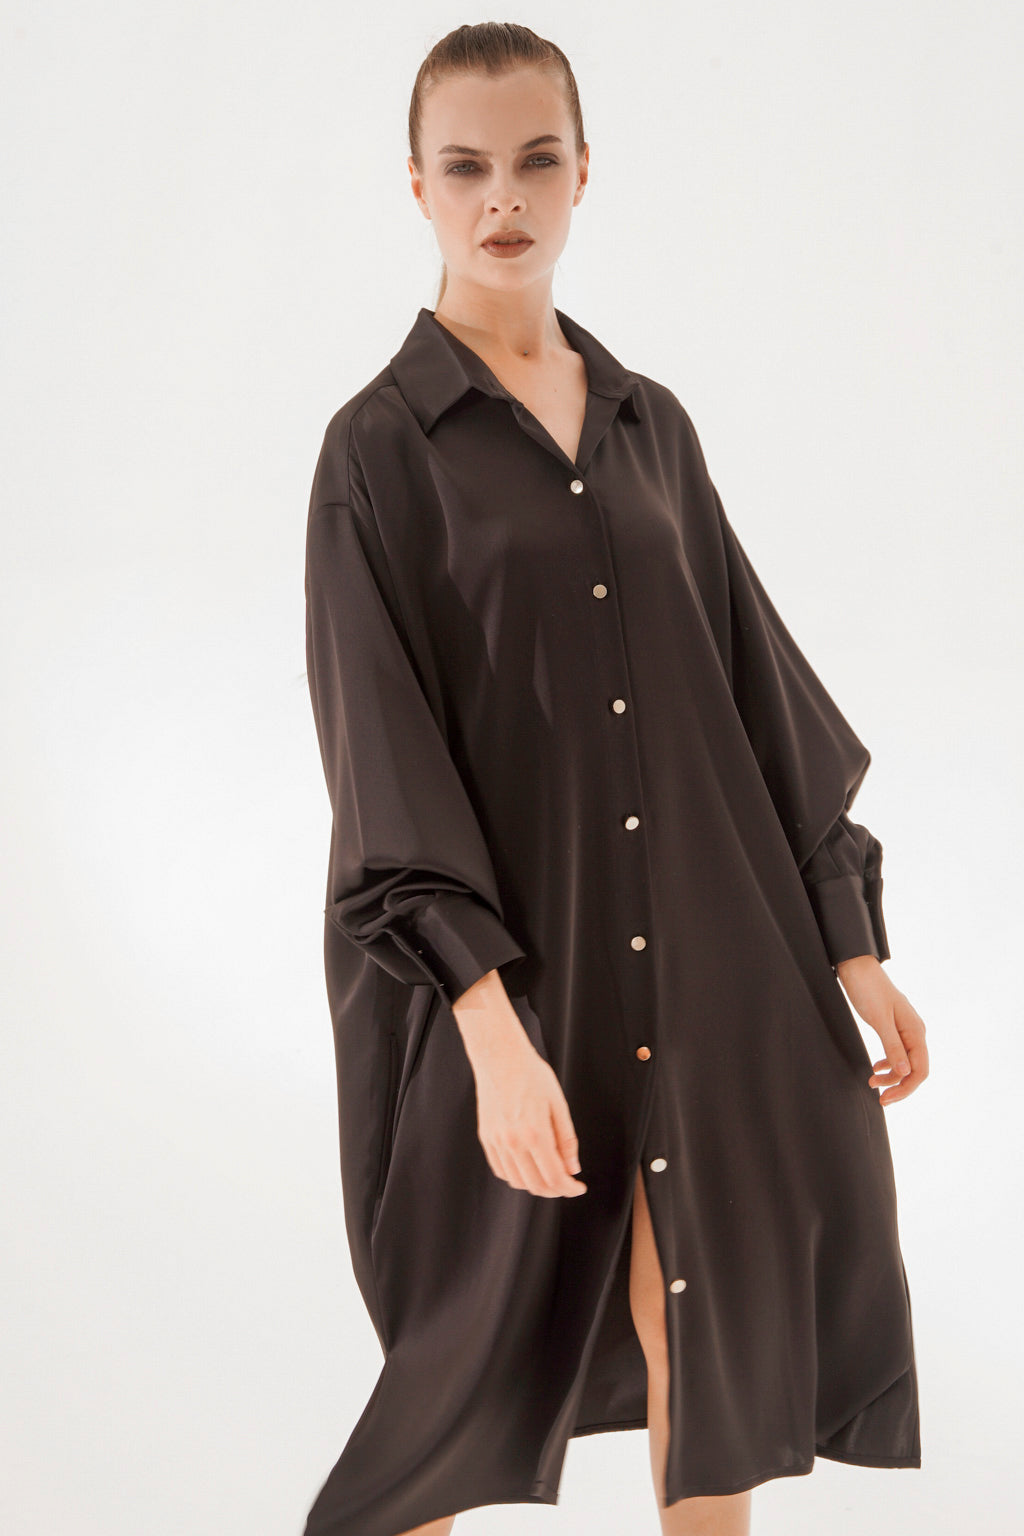 K-SHIRT MIDI BASIC BLACK